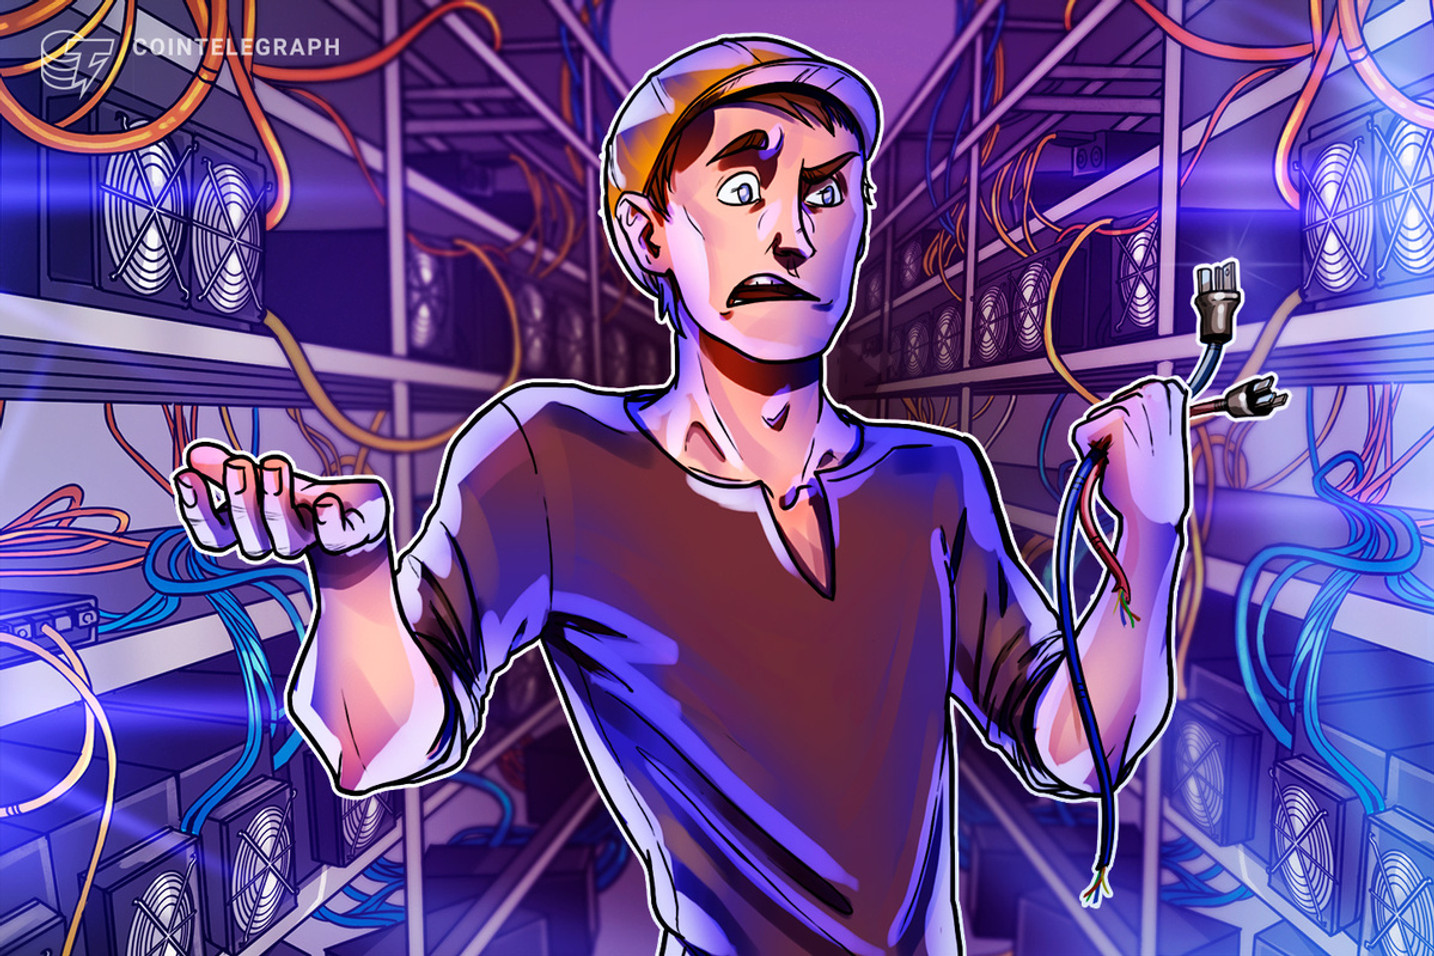 10,000 Antminers Go 'Missing' in Latest Chapter of Bitmain Power Saga